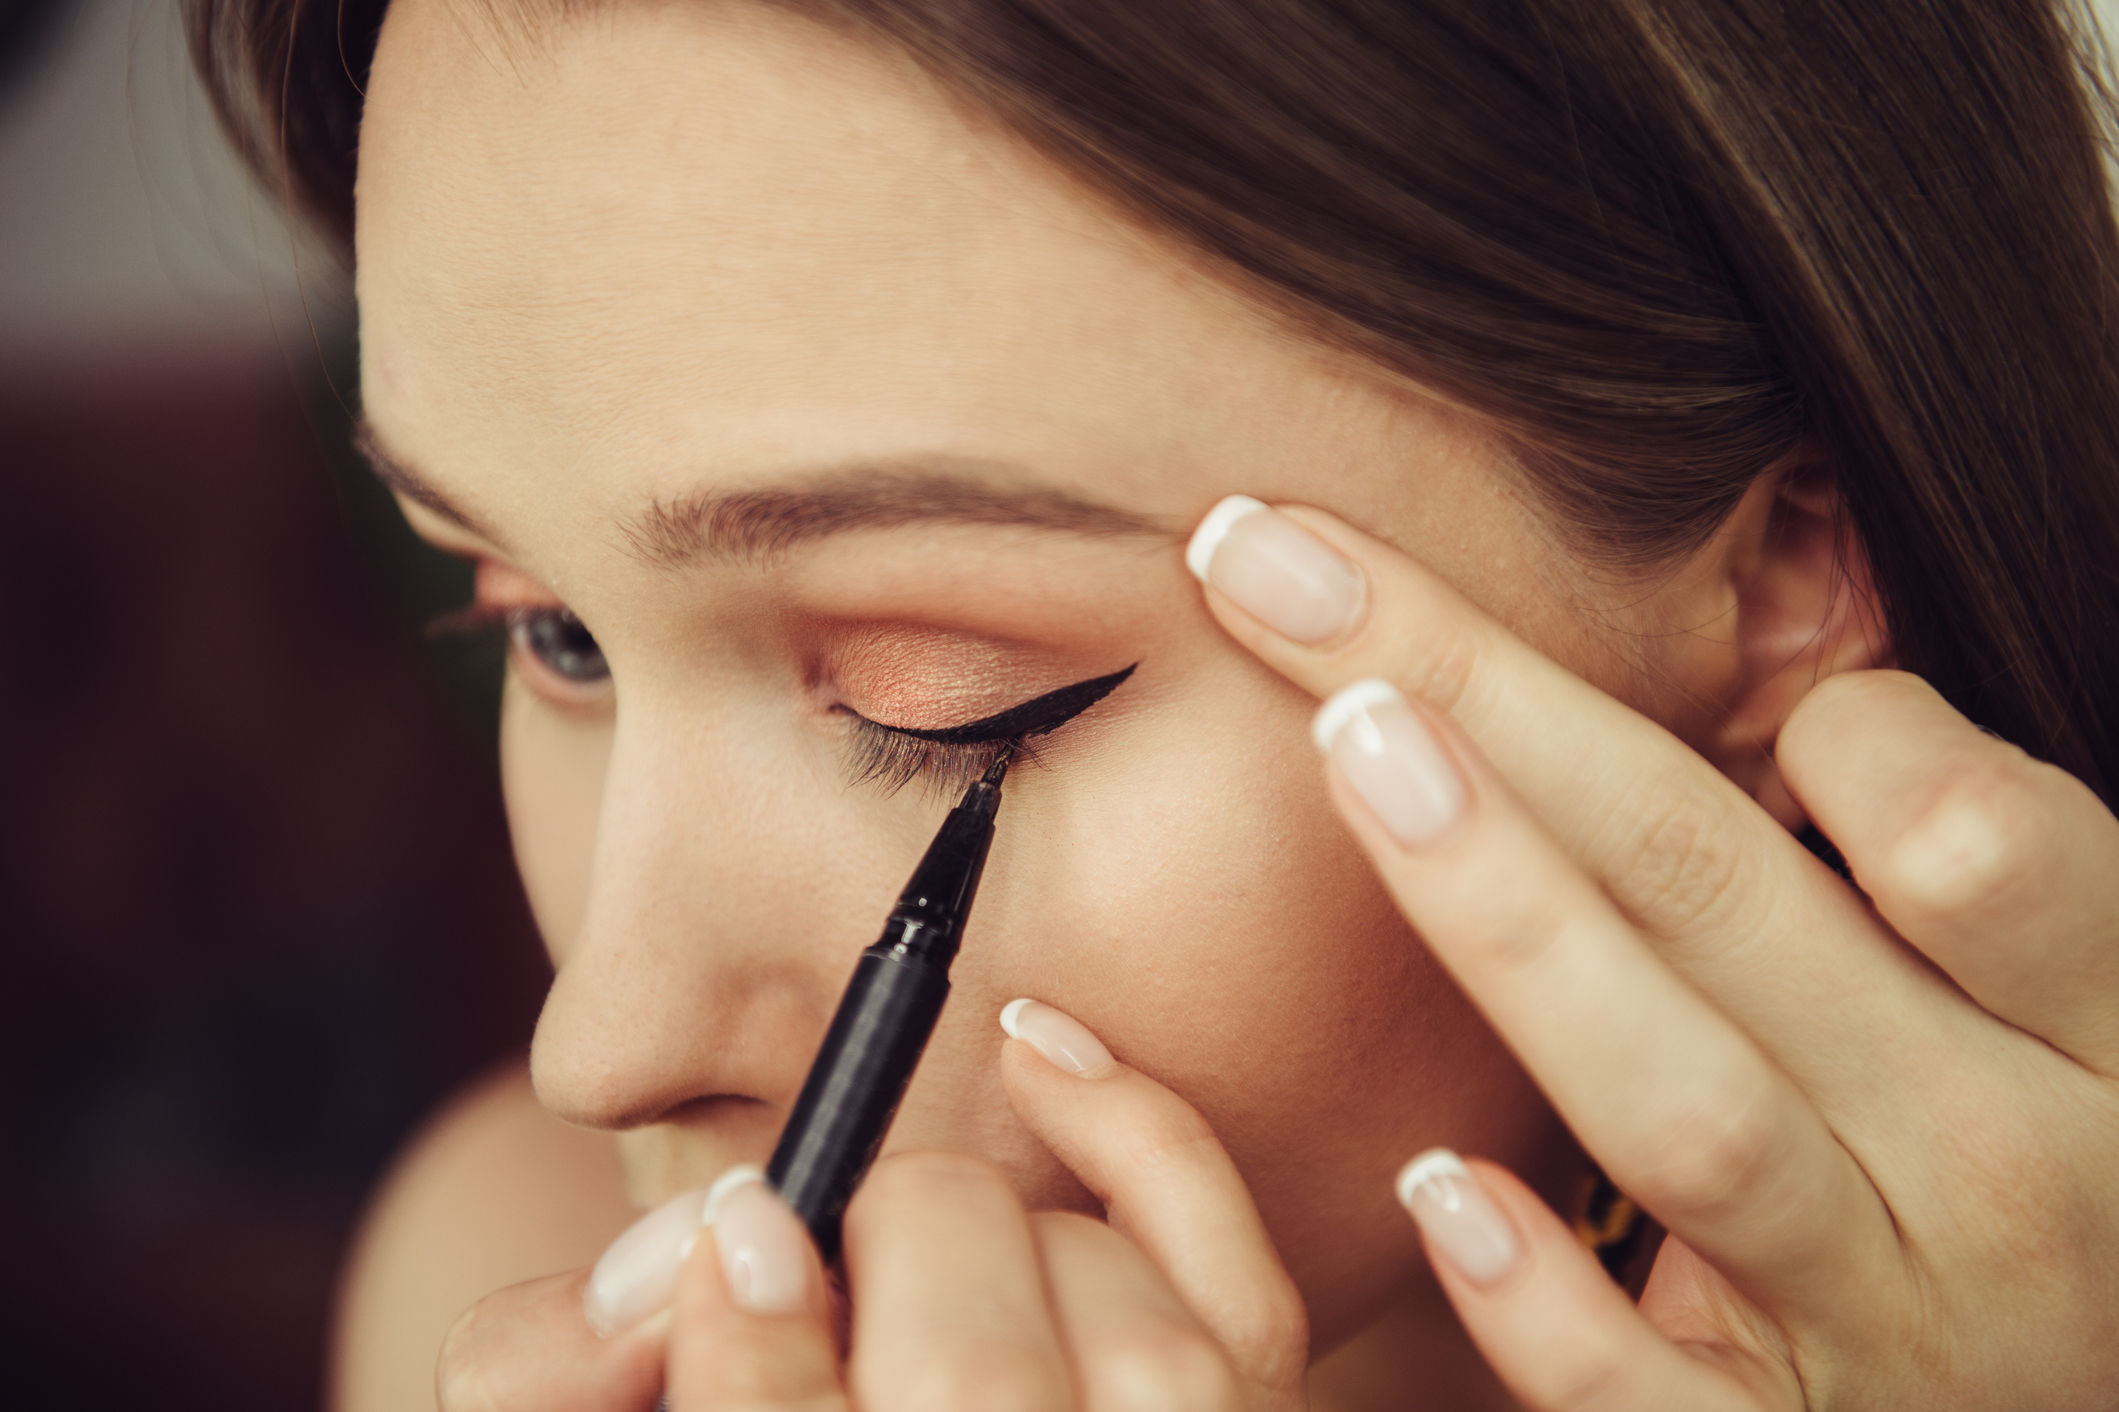 WATCH: 9 Eye Makeup Mistakes That Are Secretly Making You Look Older